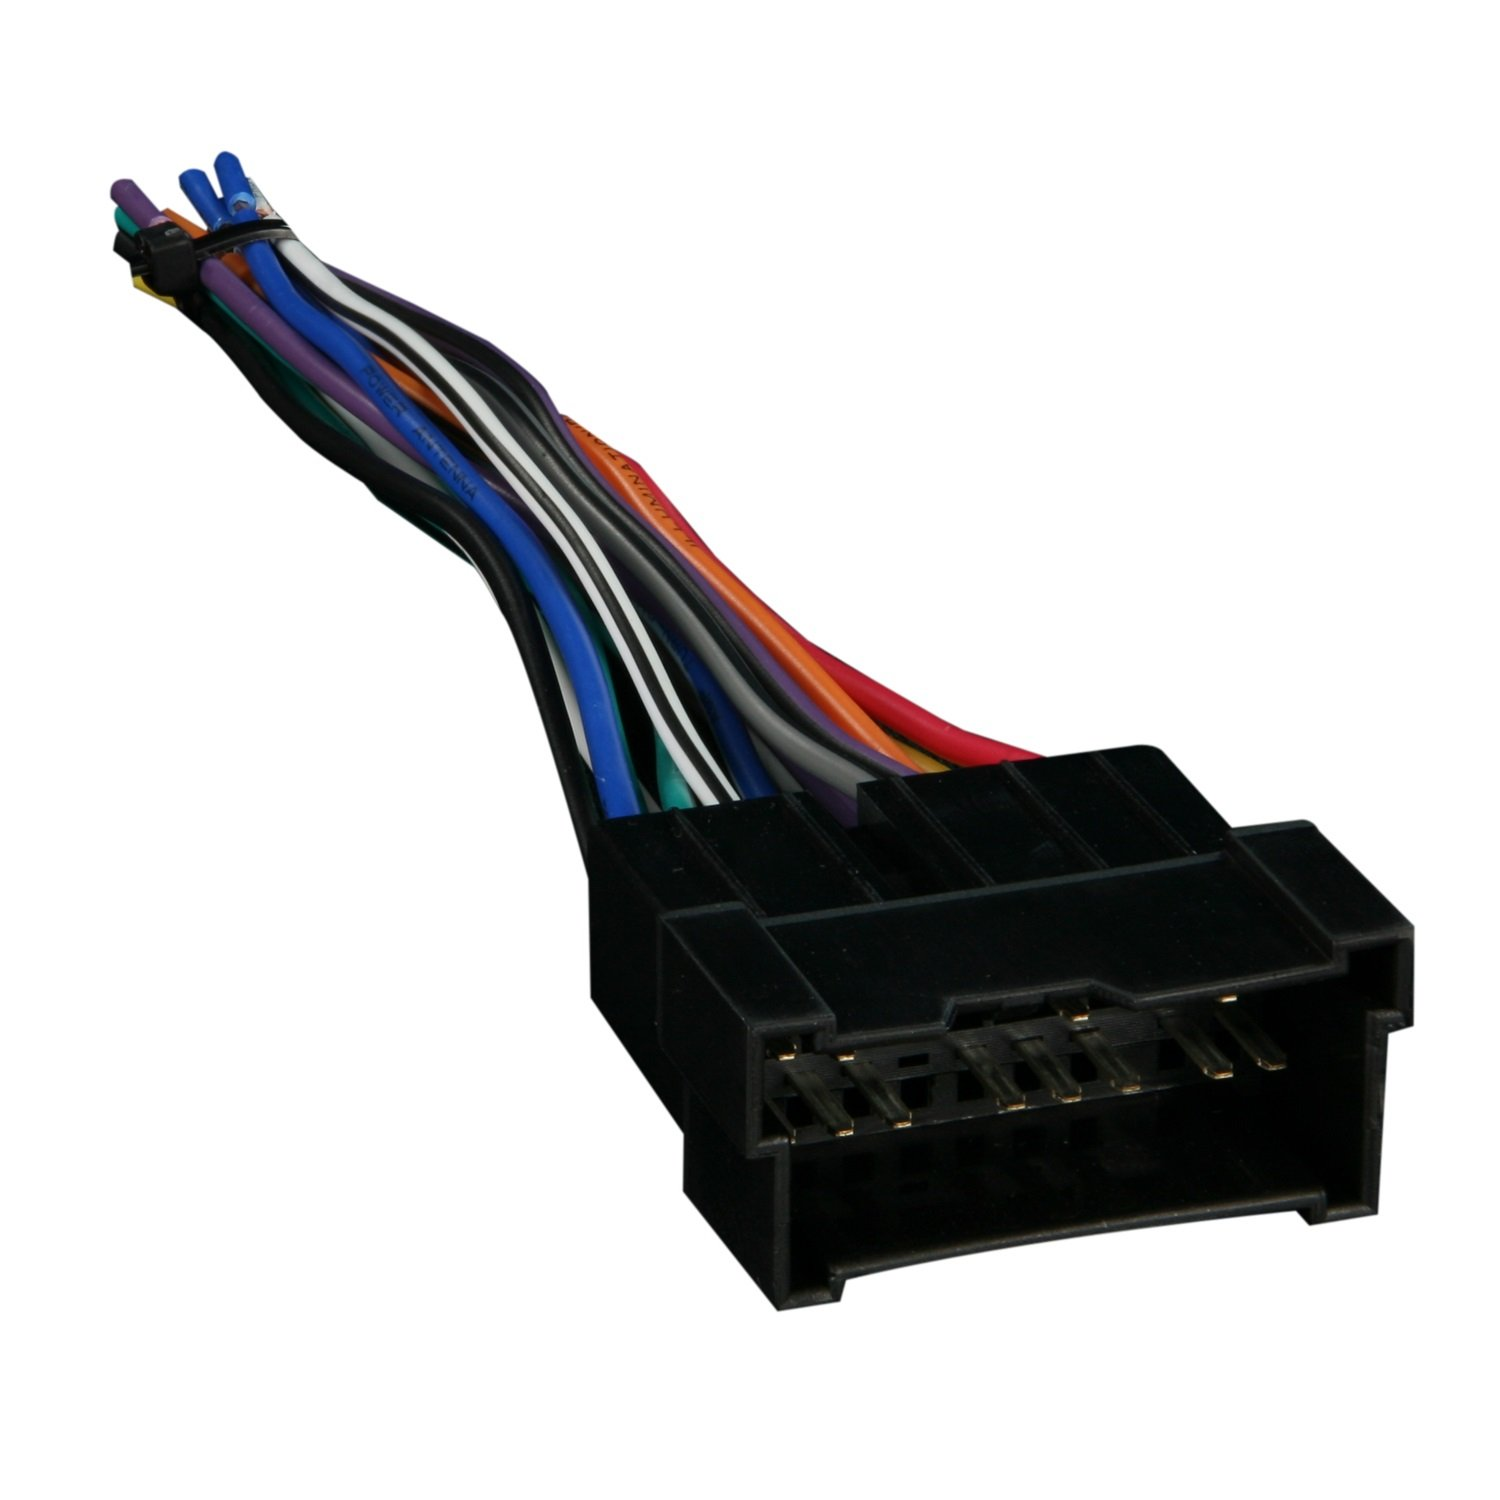 617yeBmOquL._SL1500_ amazon com metra 70 7301 radio wiring harness for hyundai kia 99 radio harness at gsmx.co